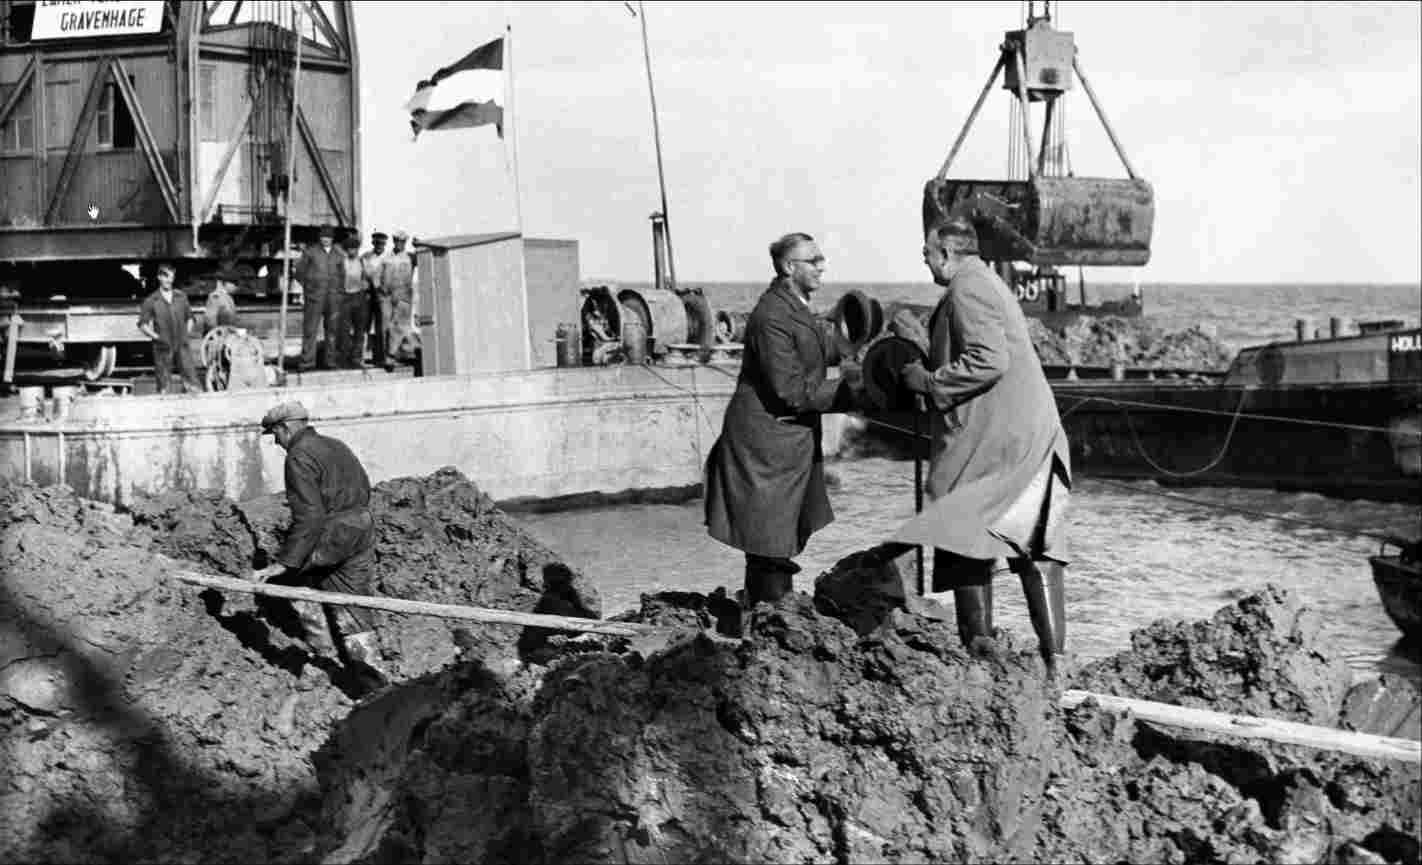 The mayor of Urk (right) and the mayor of Lemmer shake hands at the Lemmerkant, after the last soil had been deposited in the IJsselmeer, so that Urk is no longer an island and the drainage of the Noordoostpolder can begin, October 12, 1939.